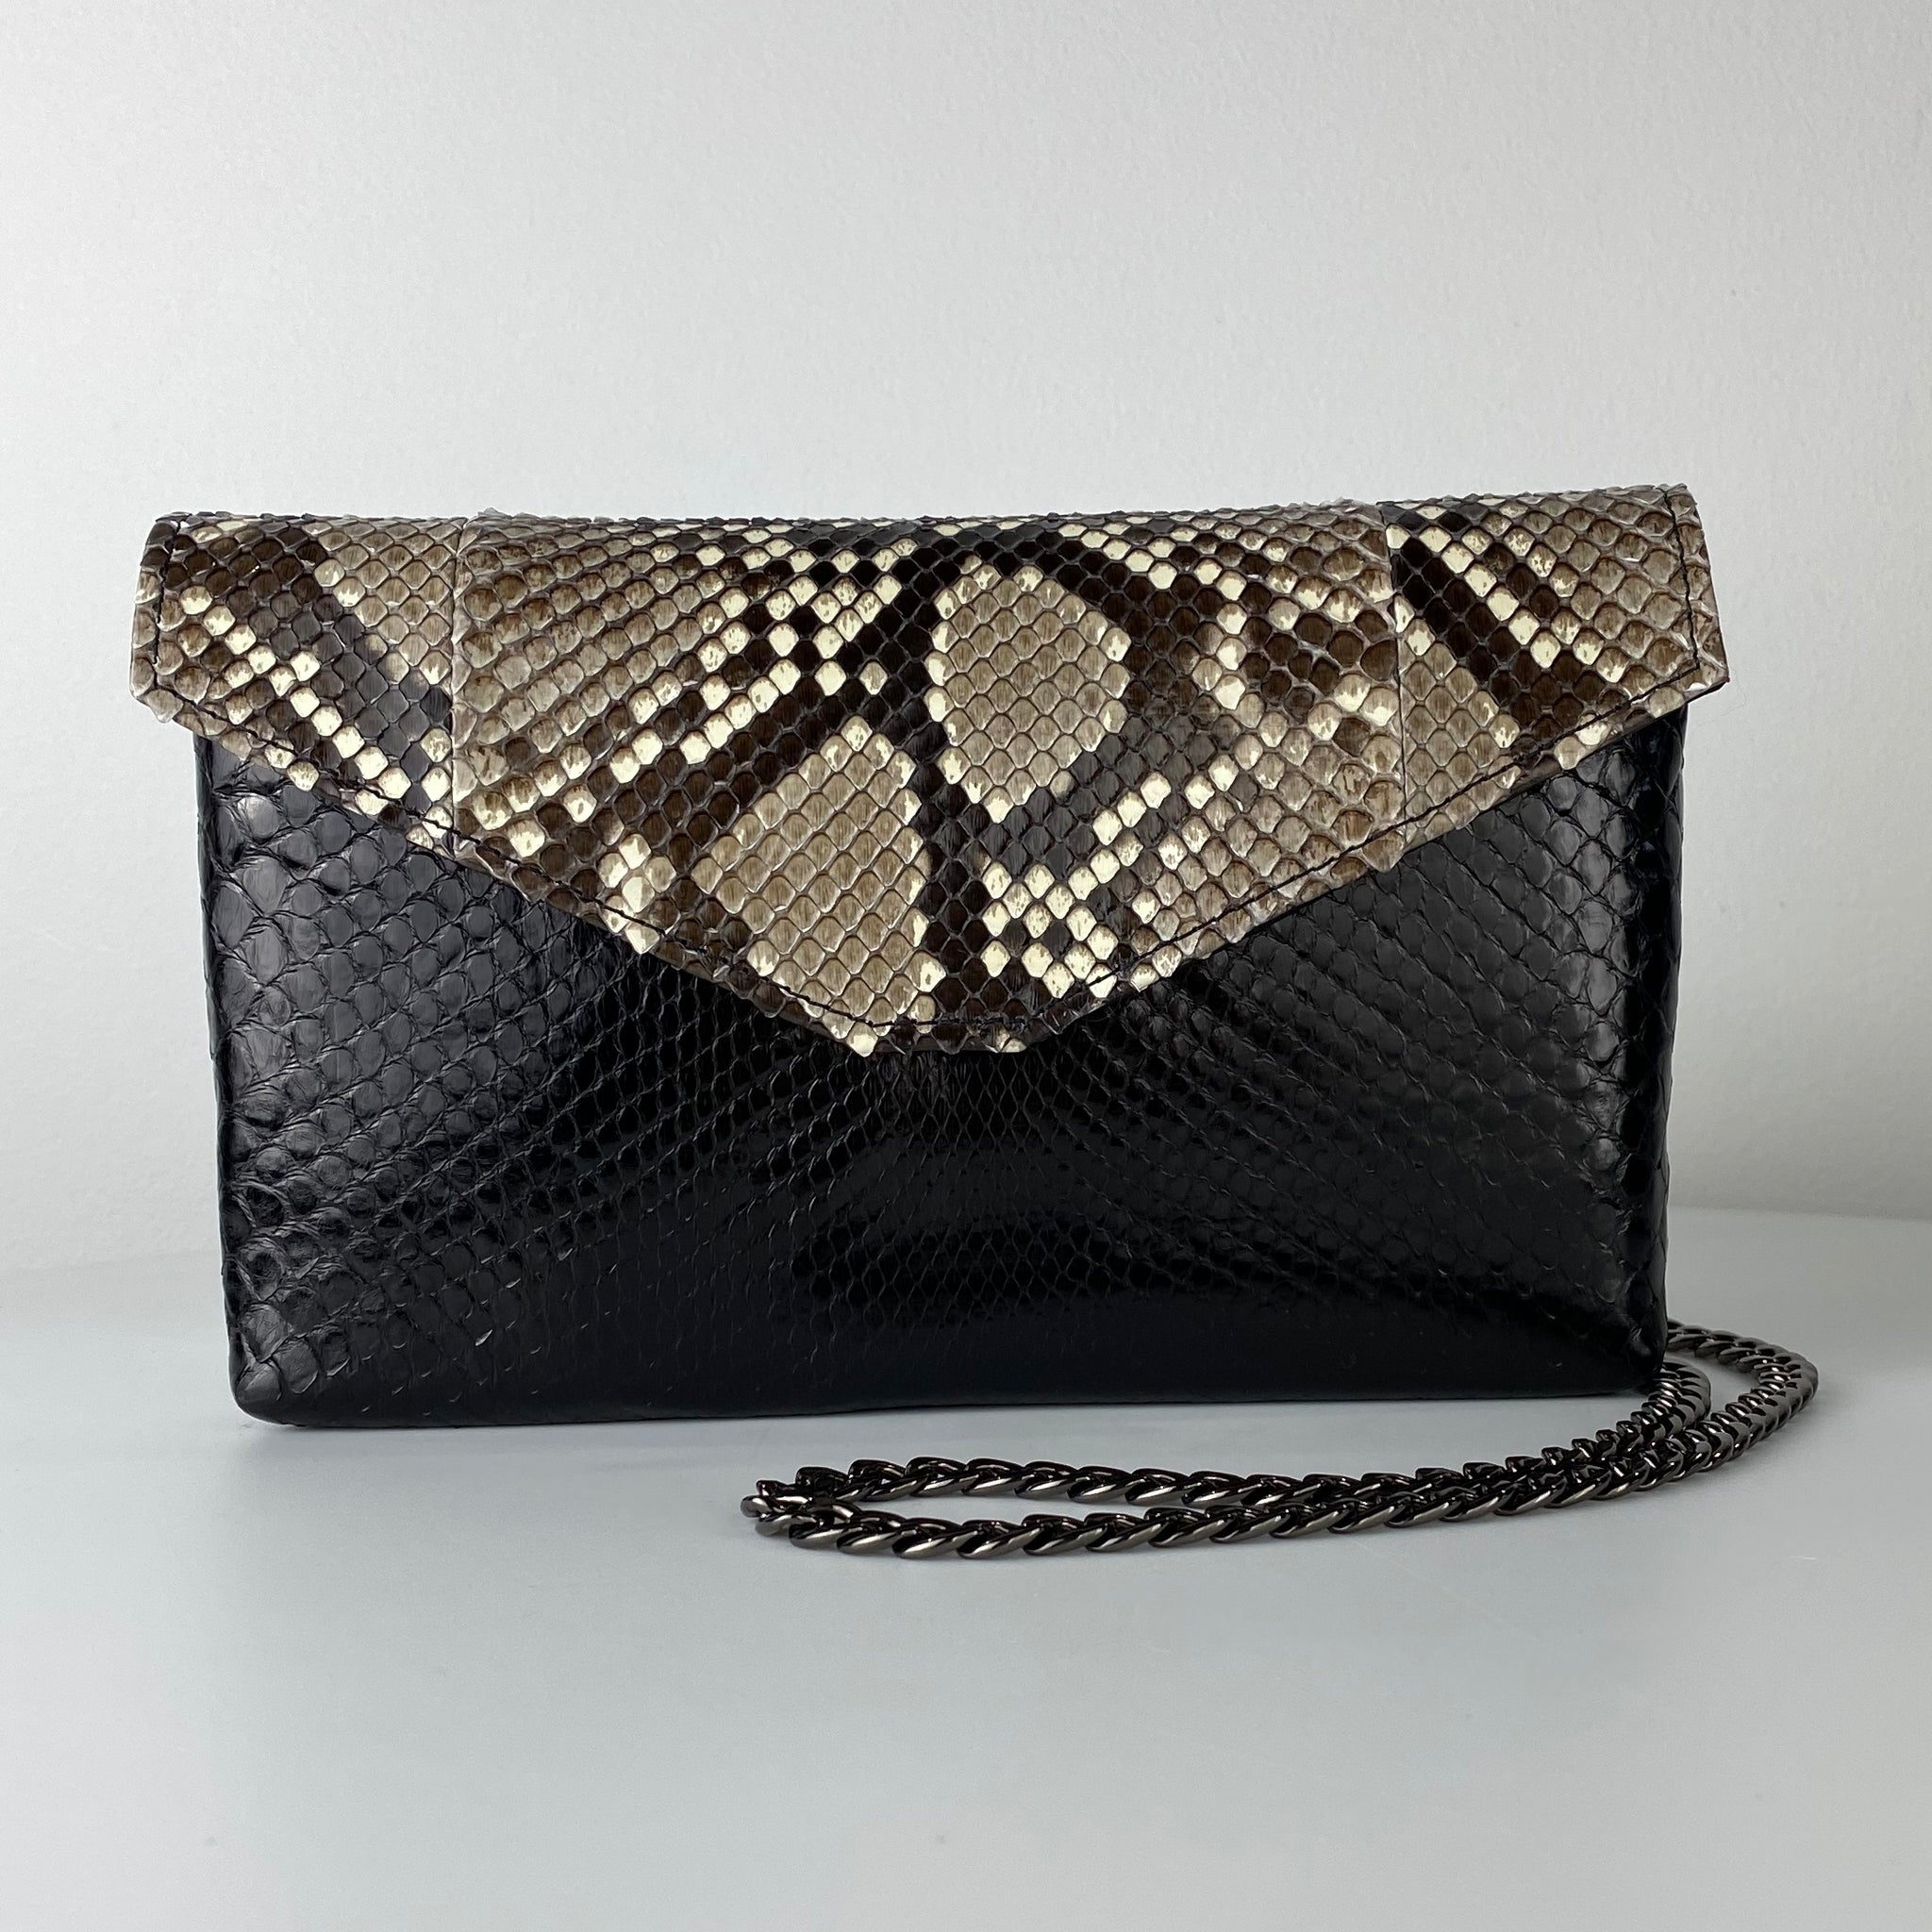 CLASSIC ENVELOPE BAG, BLACK & WHITE EXOTIC